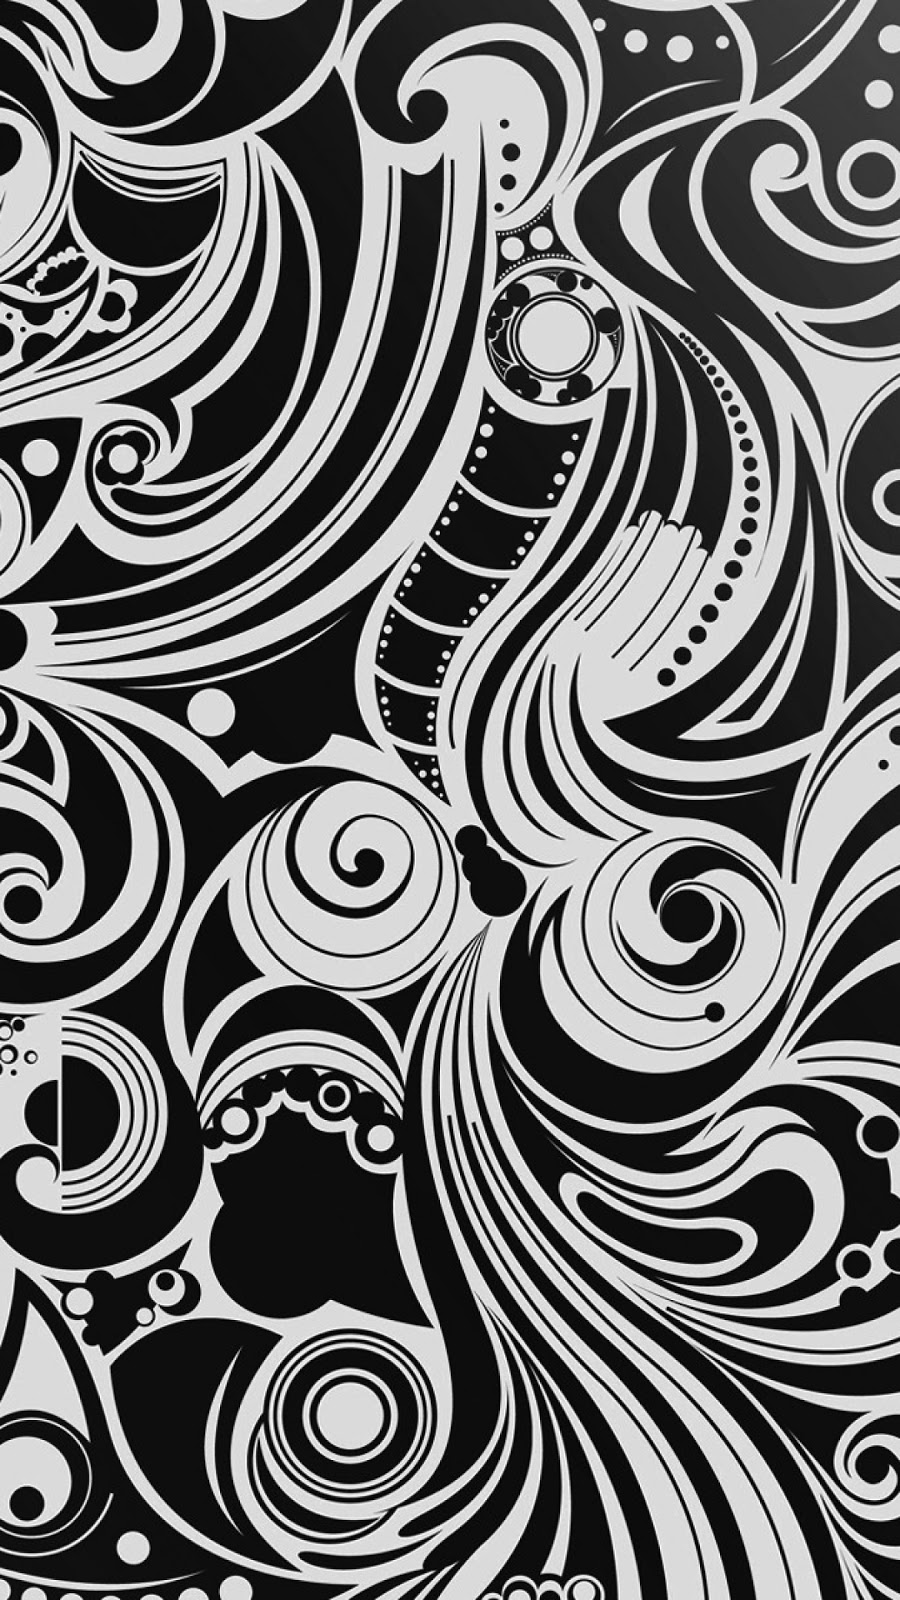 Android Wallpaper Black And White Spiral Pattern 900x1600